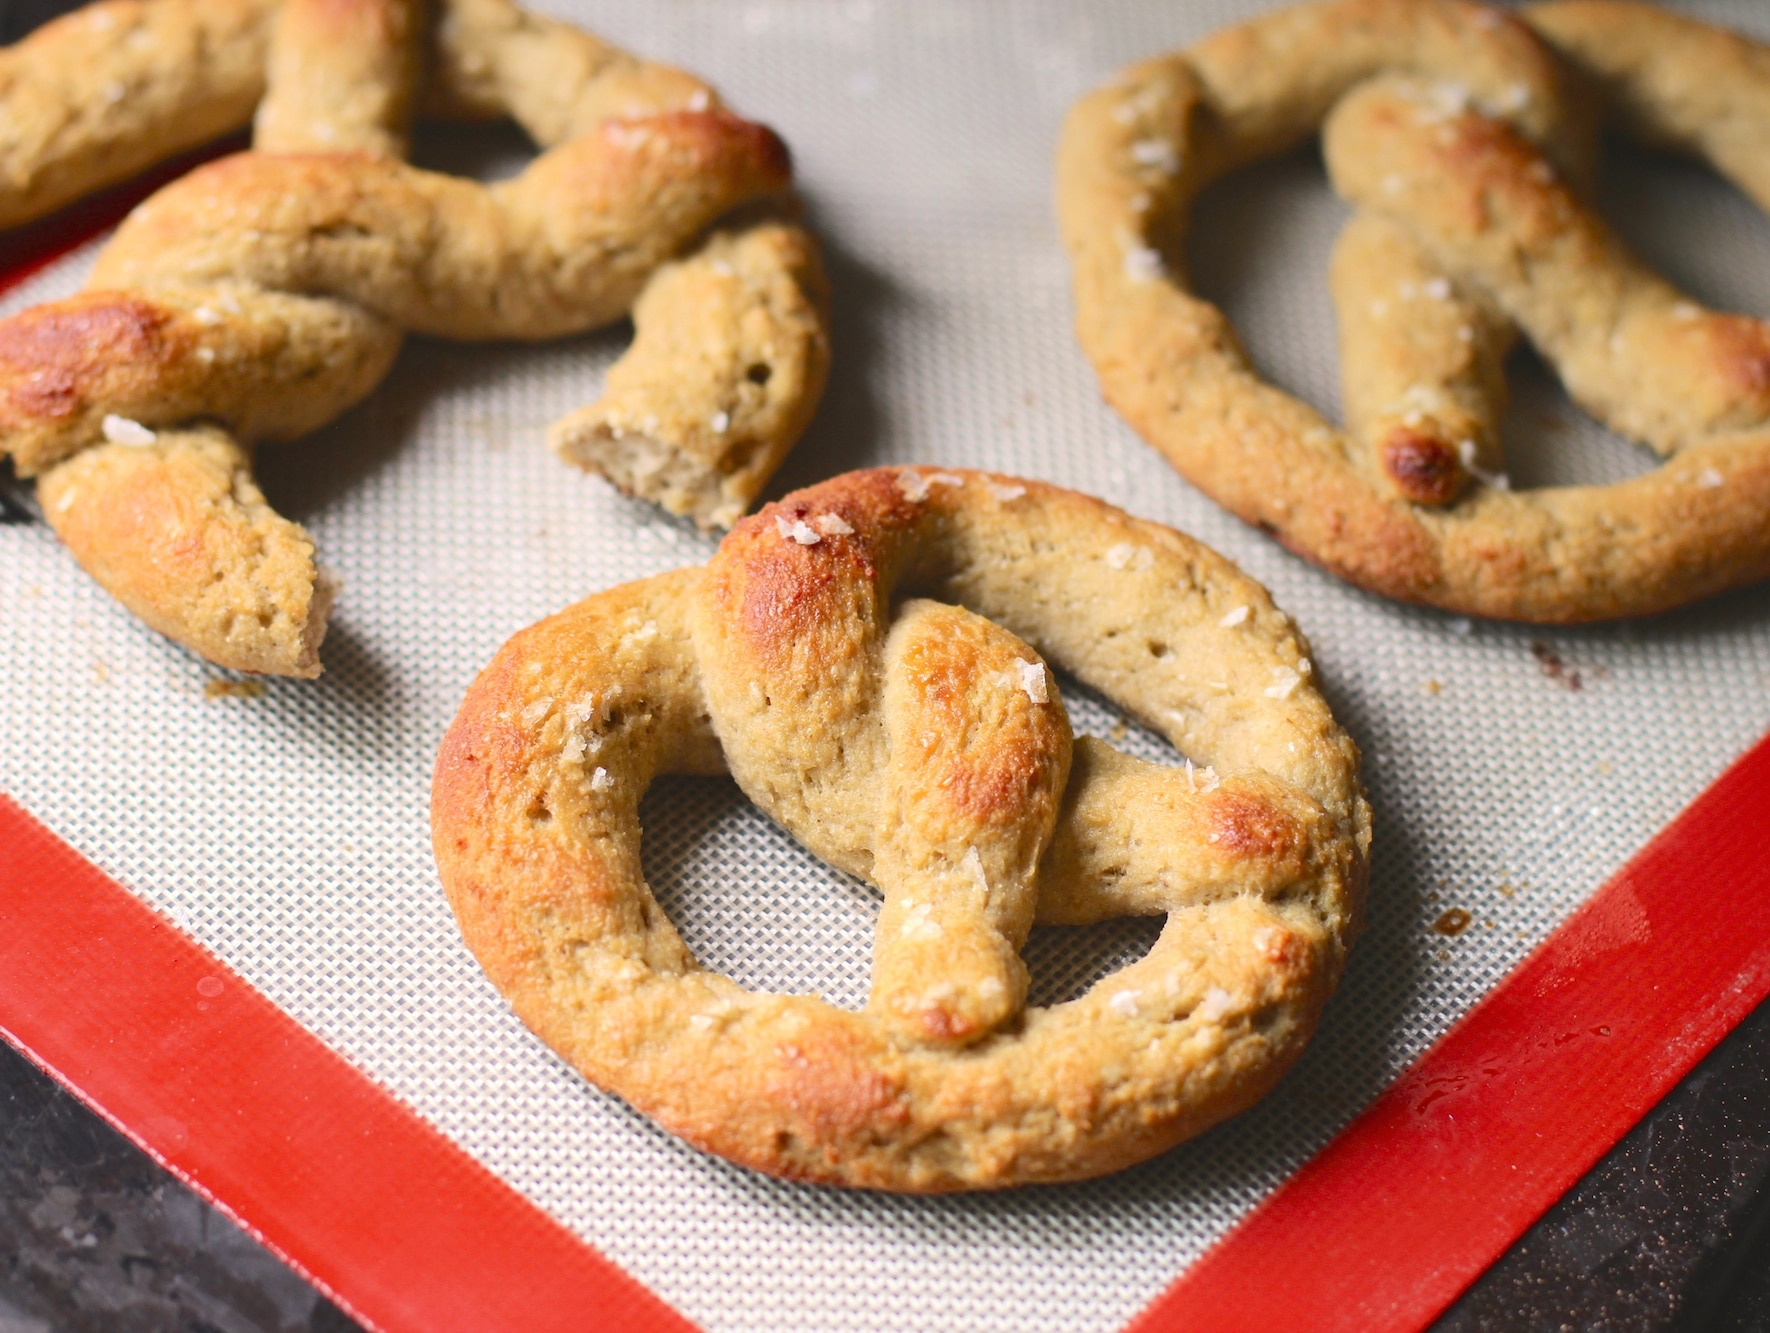 Healthy Homemade Low Carb and Gluten Free Soft Pretzels